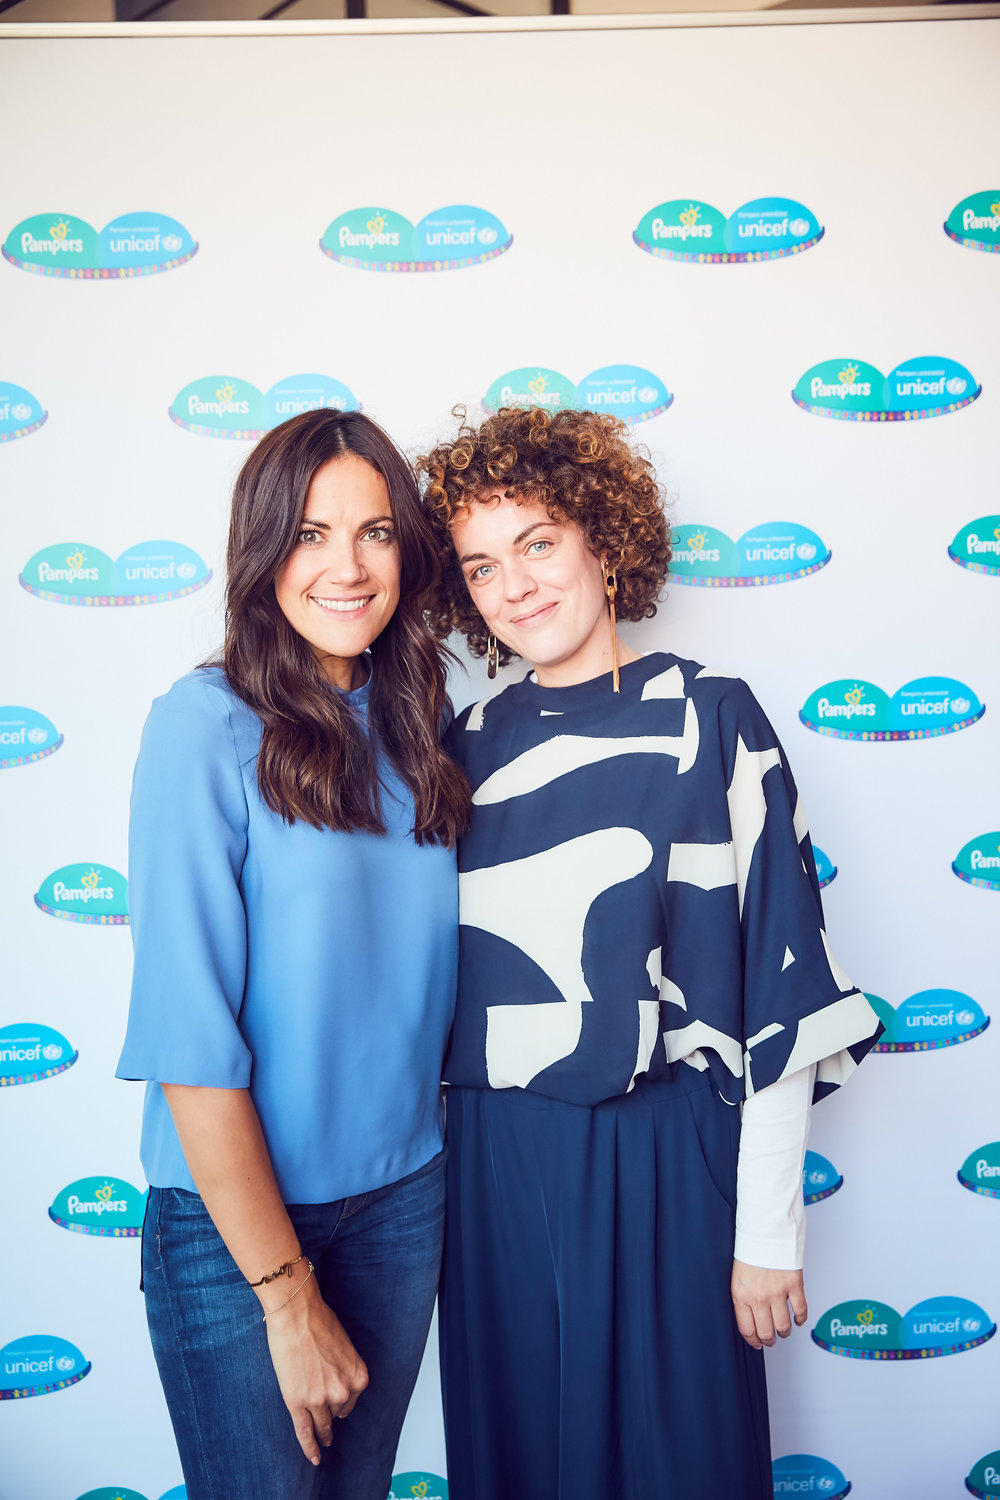 #pampersUNICEF - Bettina Zimmermann beim Meet & Greet in Berlin